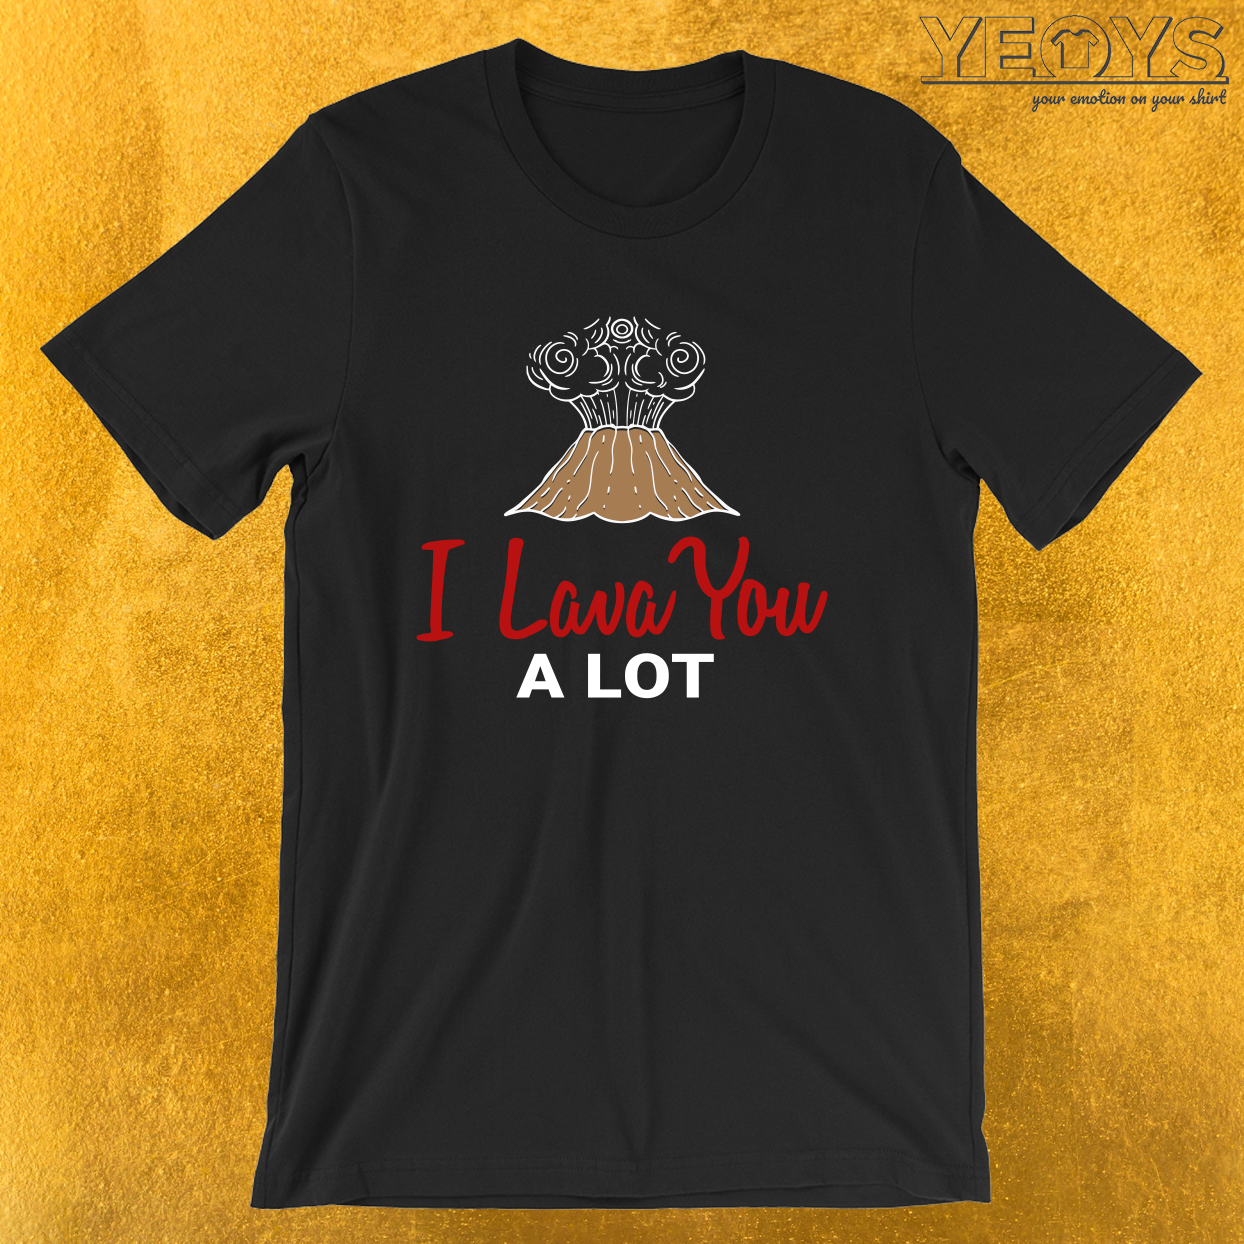 I Lava You A Lot – Funny Magma Volcano Tee